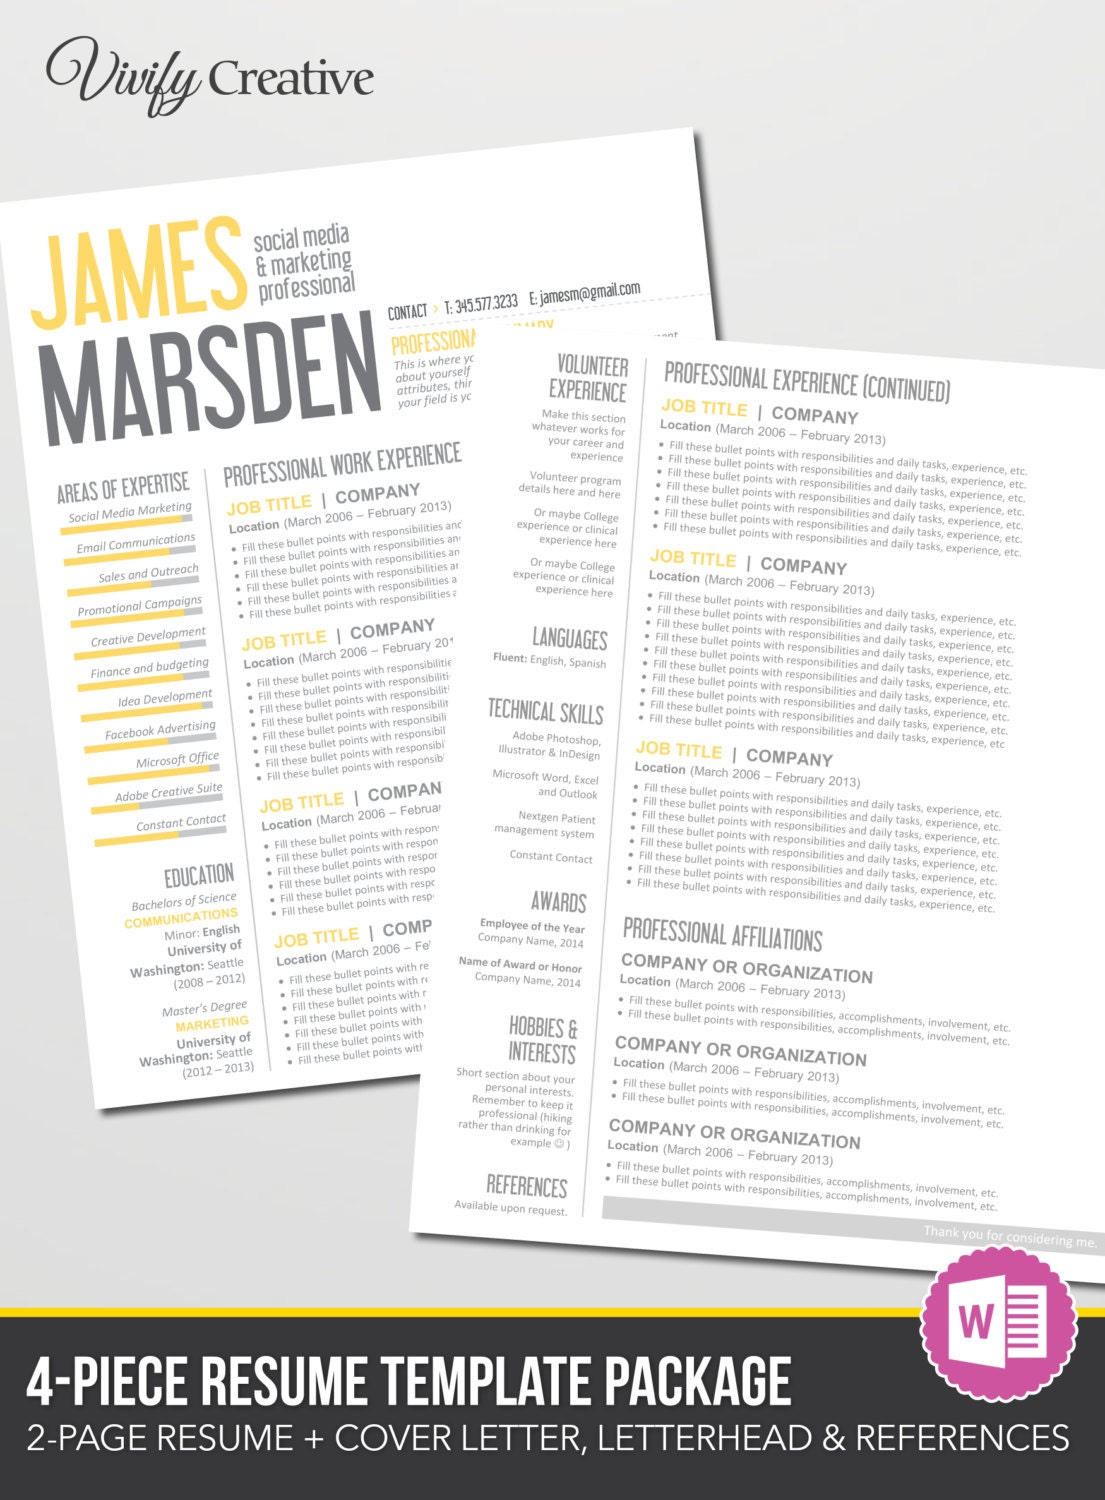 resume template download editable instant by vivifycreative